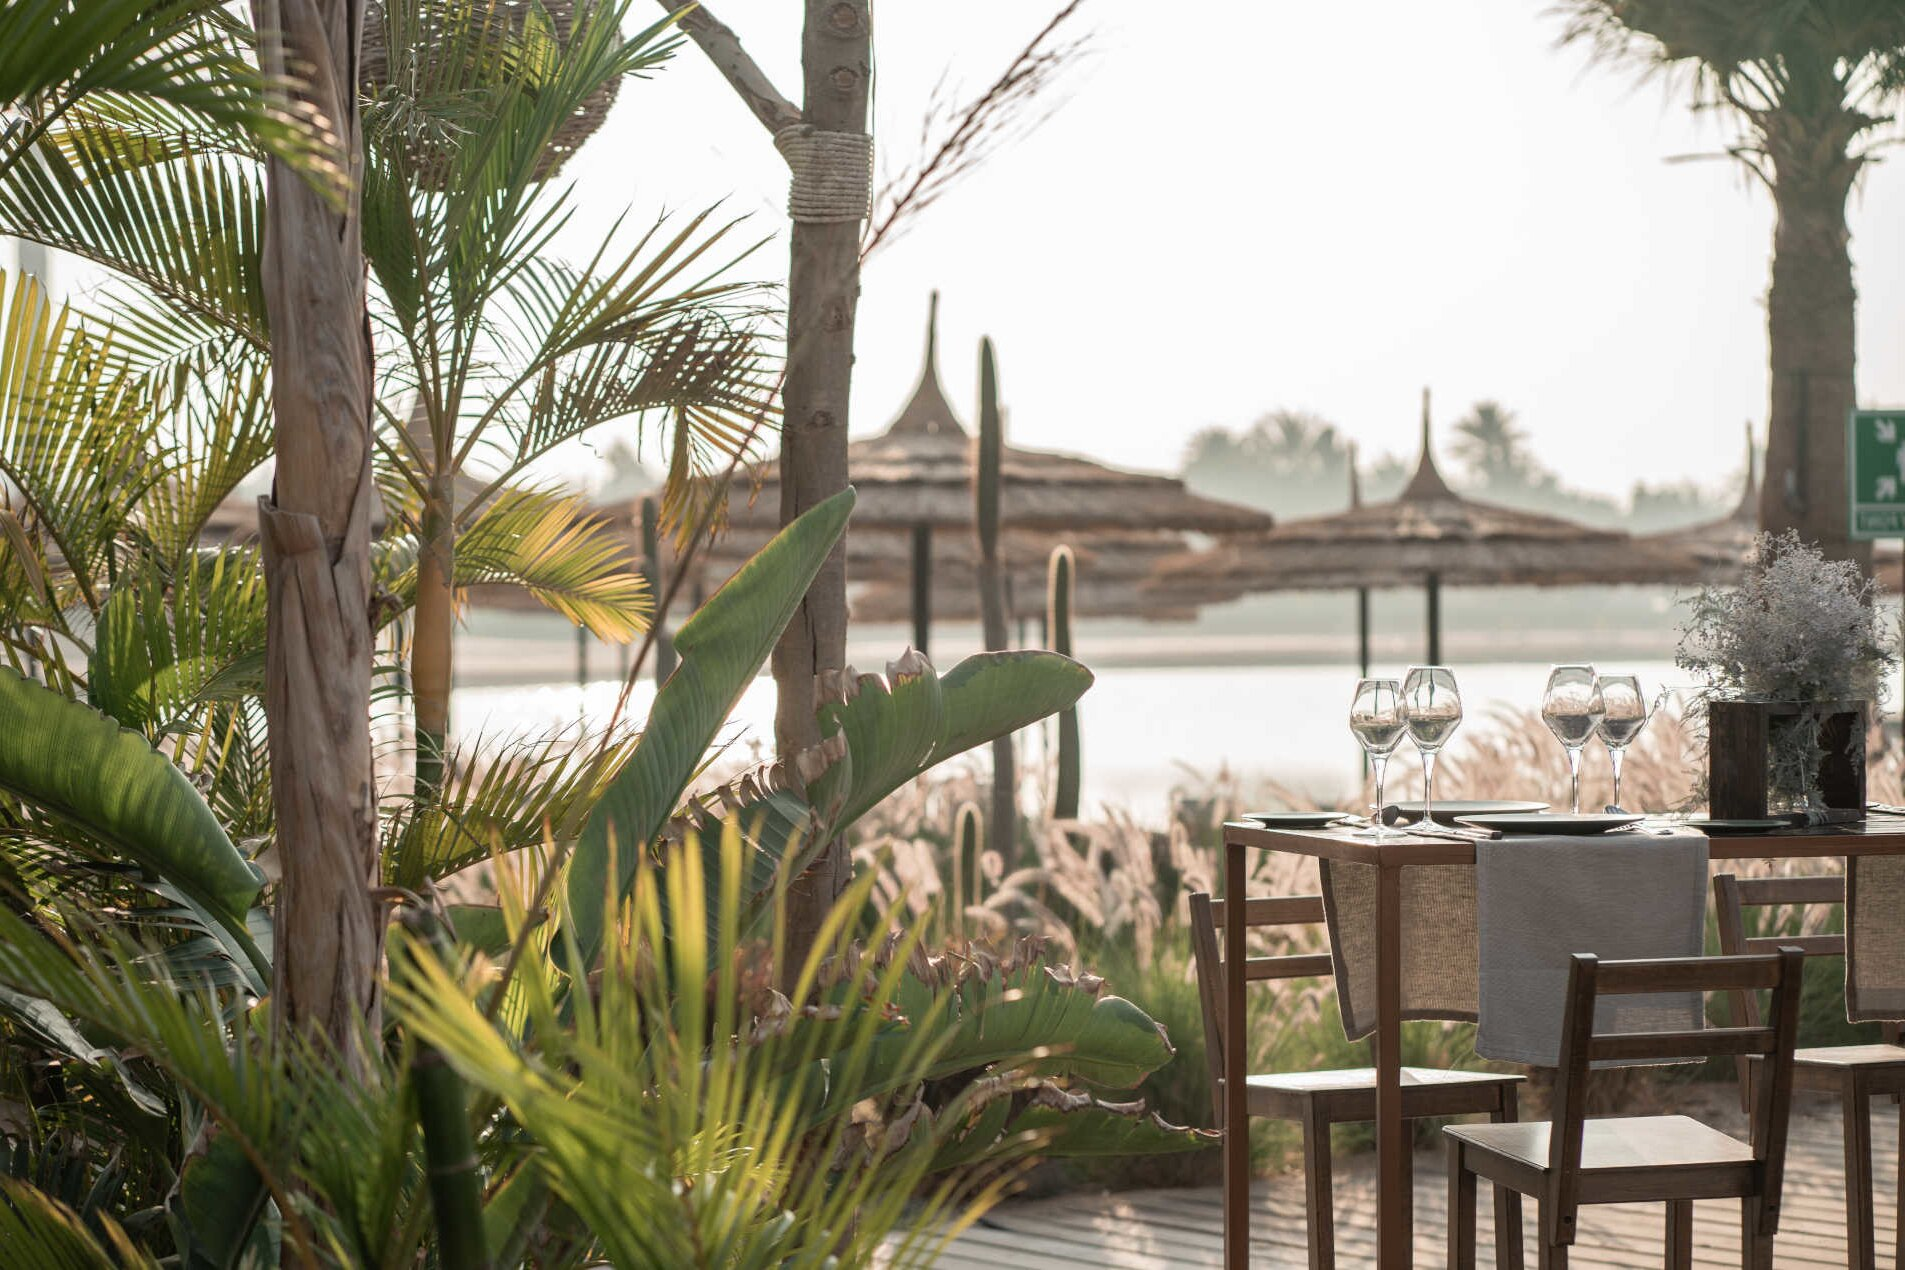 The outdoor wedding venue at Cook's Club Hotel in El Gouna, special occasions venues in Red Sea